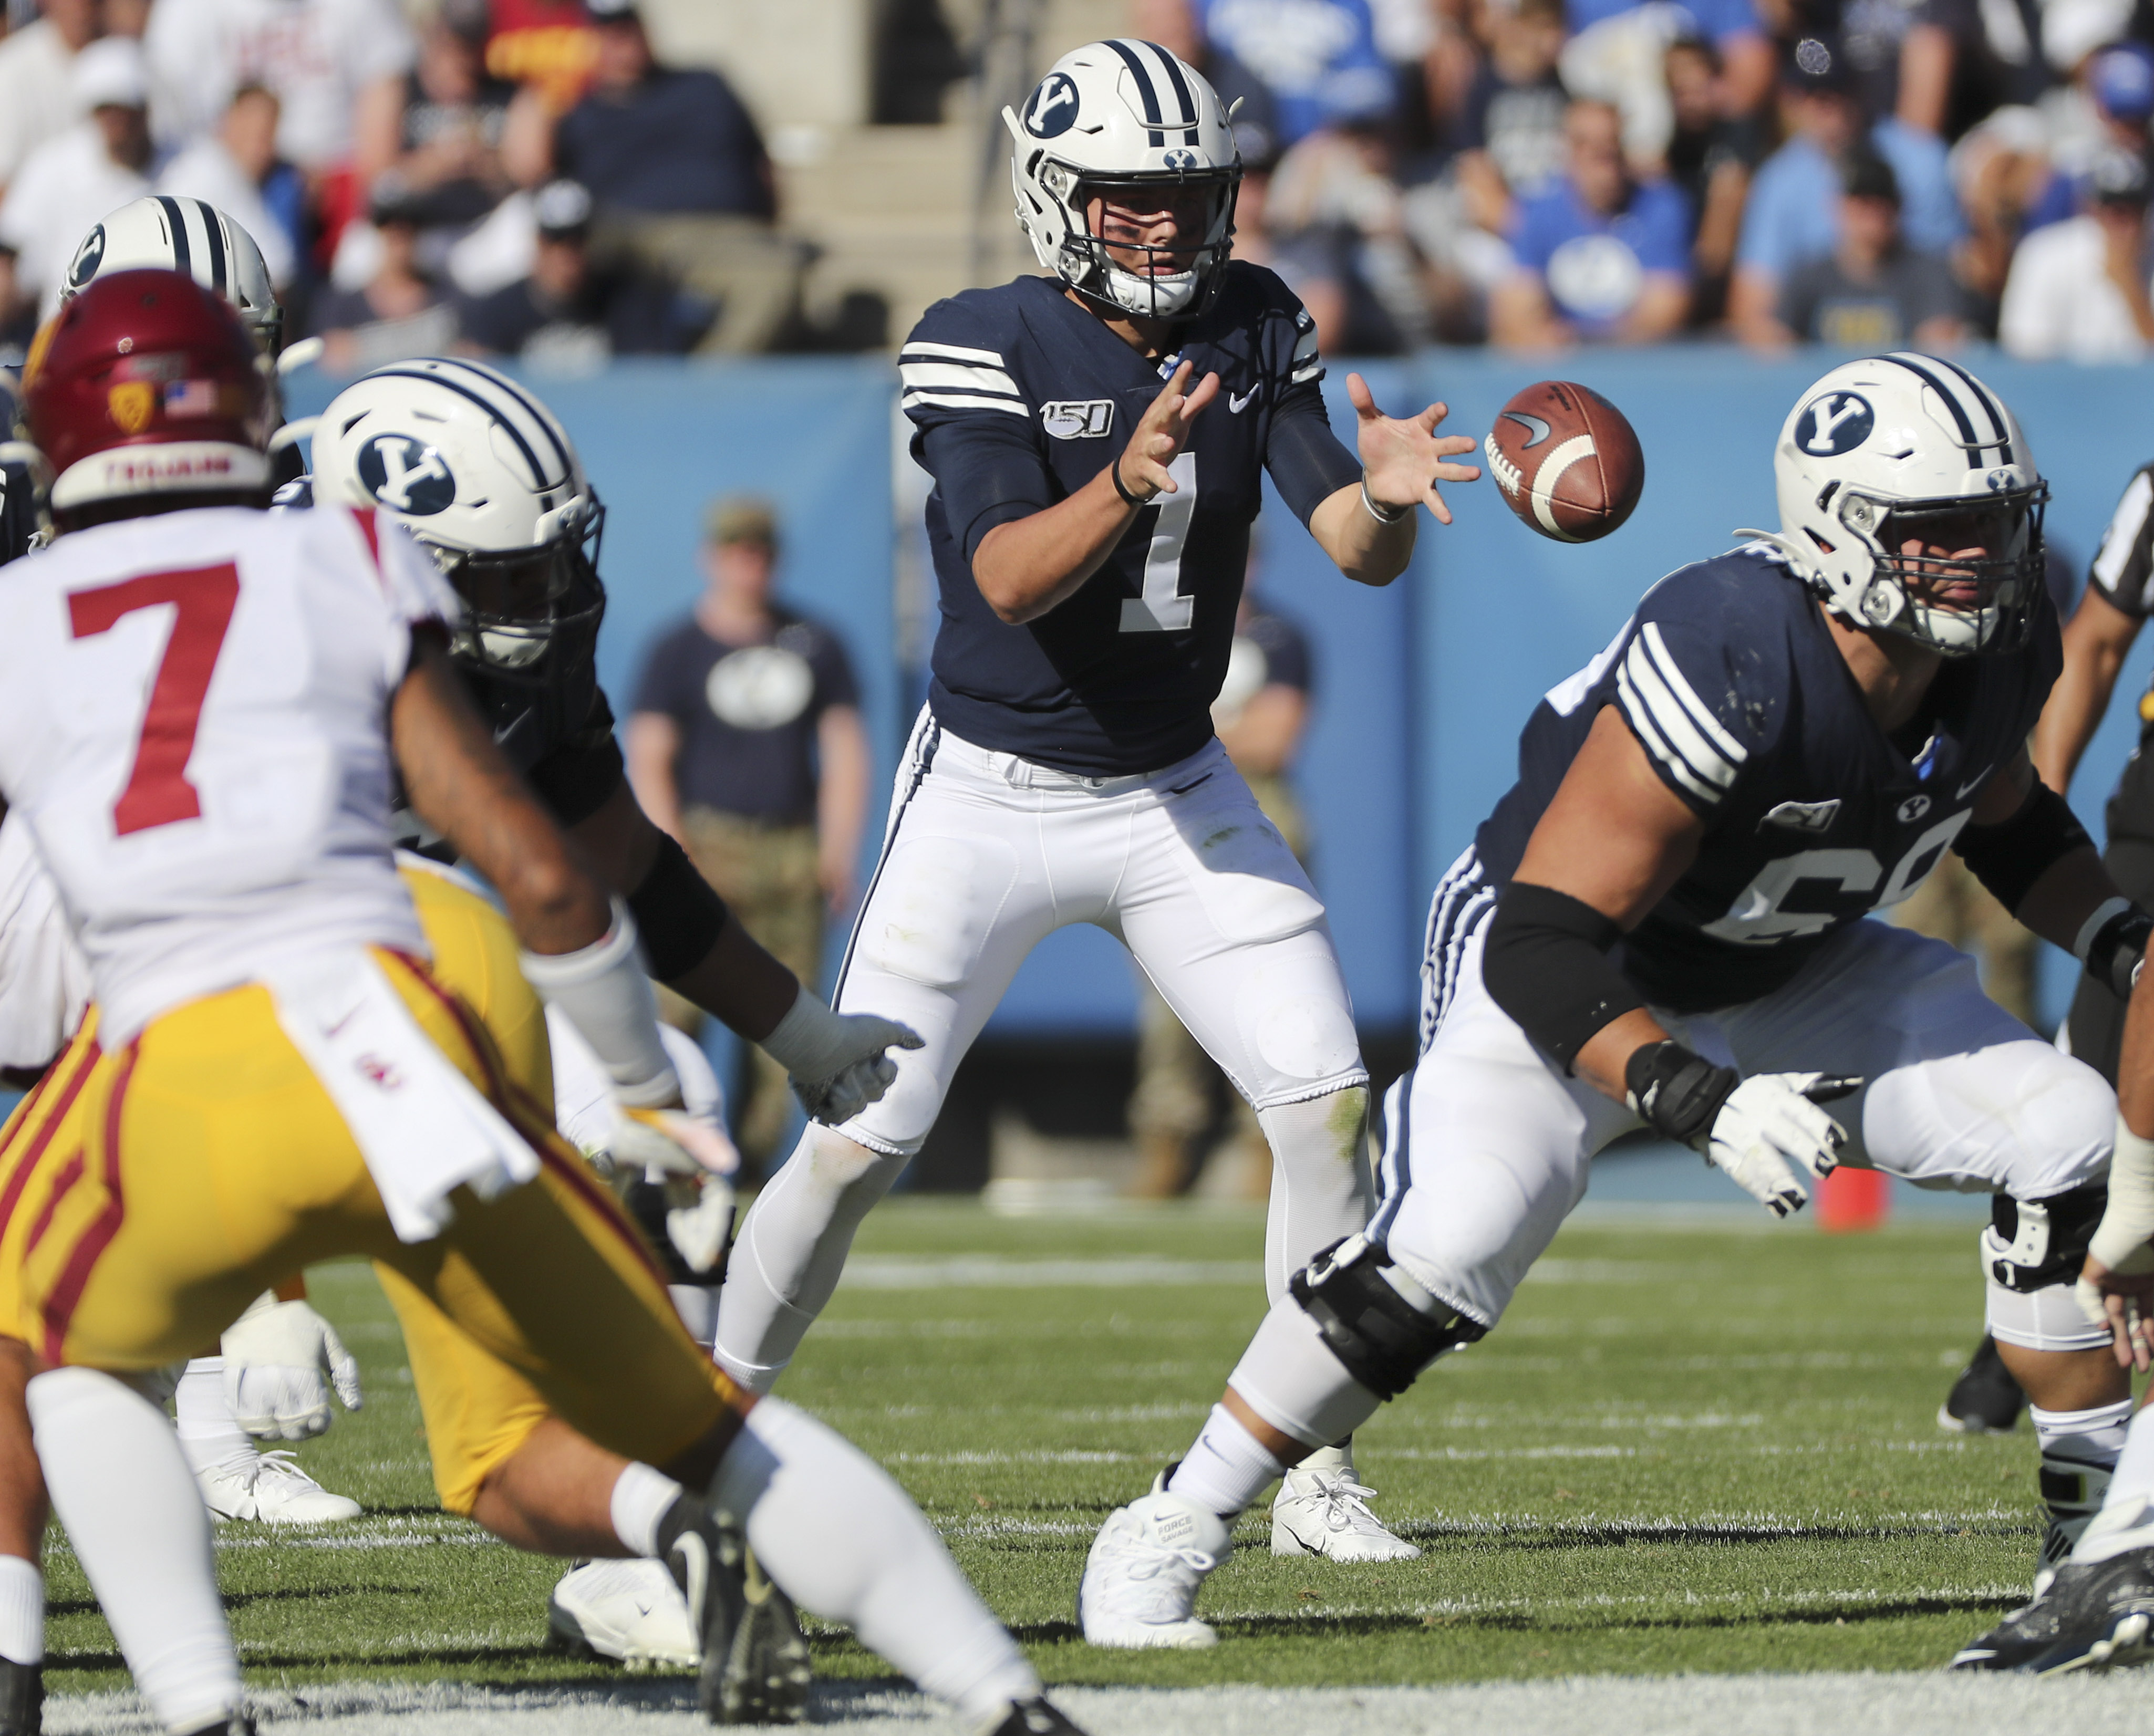 Brigham Young Cougars quarterback Zach Wilson (1) takes a snap in Provo on Saturday, Sept. 14, 2019. BYU won 30-27 in overtime.